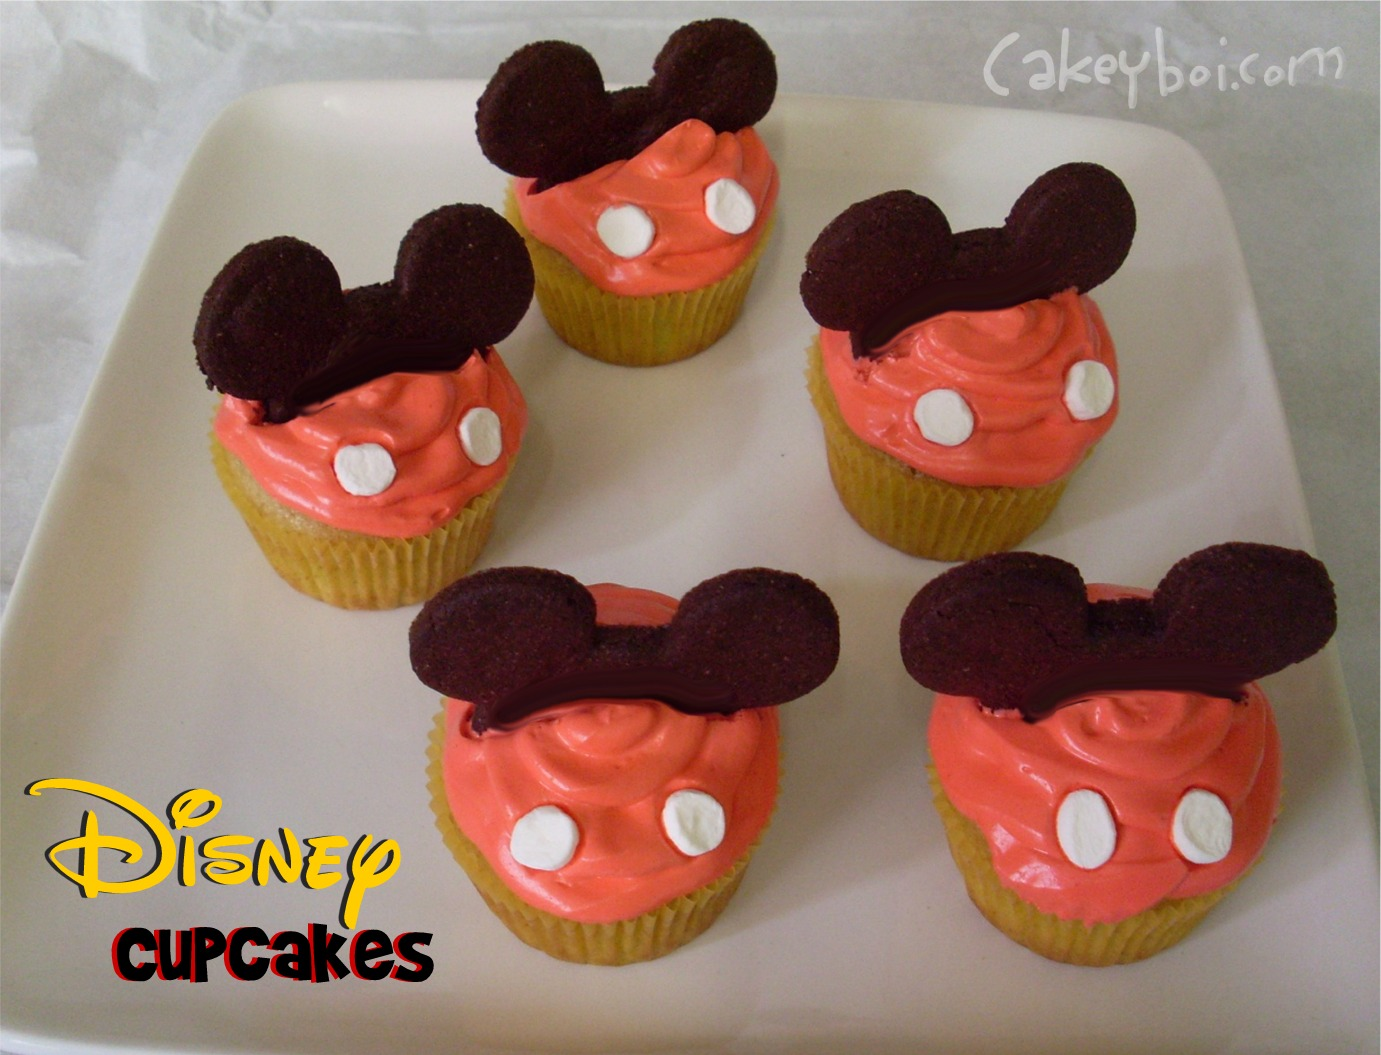 Pictures Of Mickey Mouse Cupcakes : Cakeyboi: Disney Cupcakes